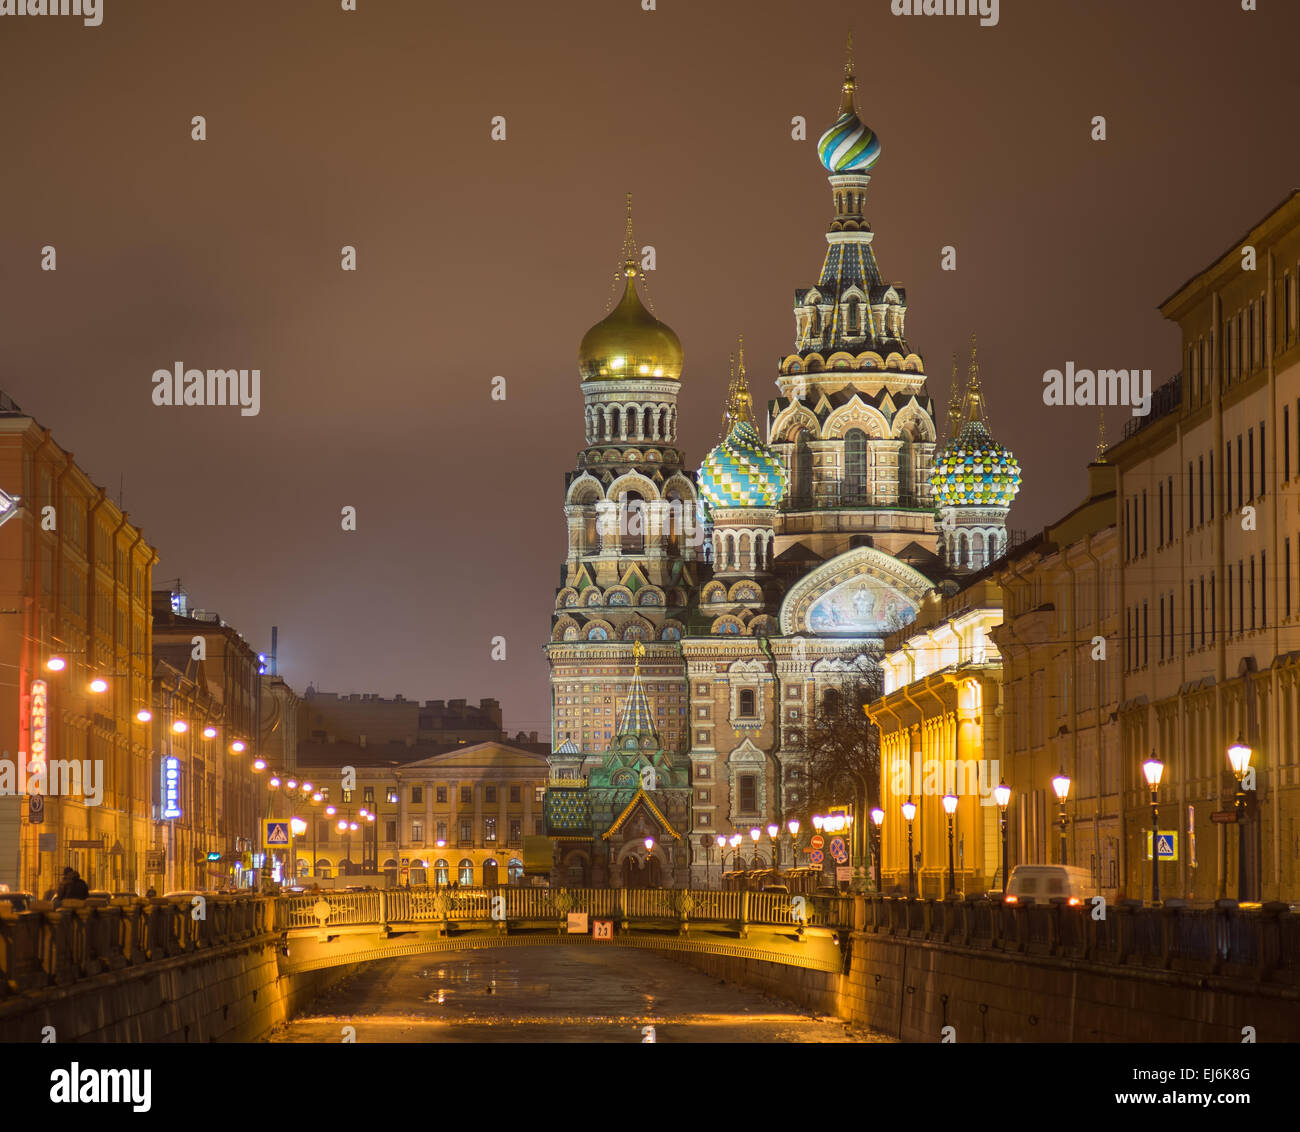 Church of the Saviour on Spilled Blood, St. Petersburg, Russia - Stock Image